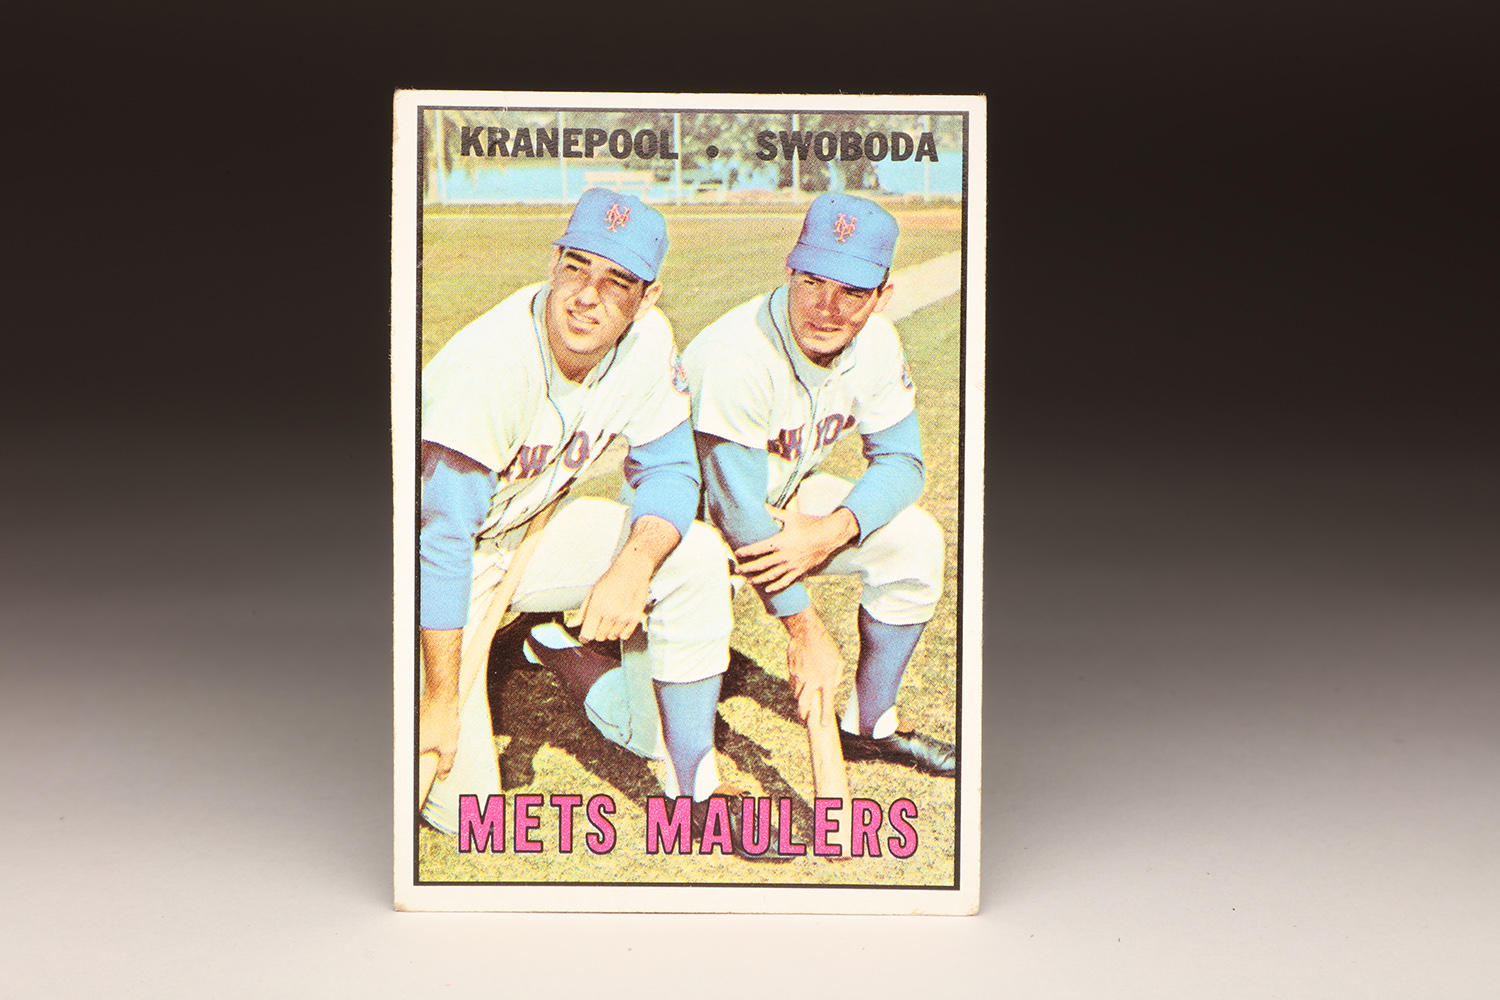 """In 1967, Topps issued a series of """"combination cards,"""" featuring two players or more from the same team. Included in that series was this """"Mets Maulers"""" card featuring Ron Swoboda and Ed Kranepool during Spring Training. (Milo Stewart Jr. / National Baseball Hall of Fame)"""